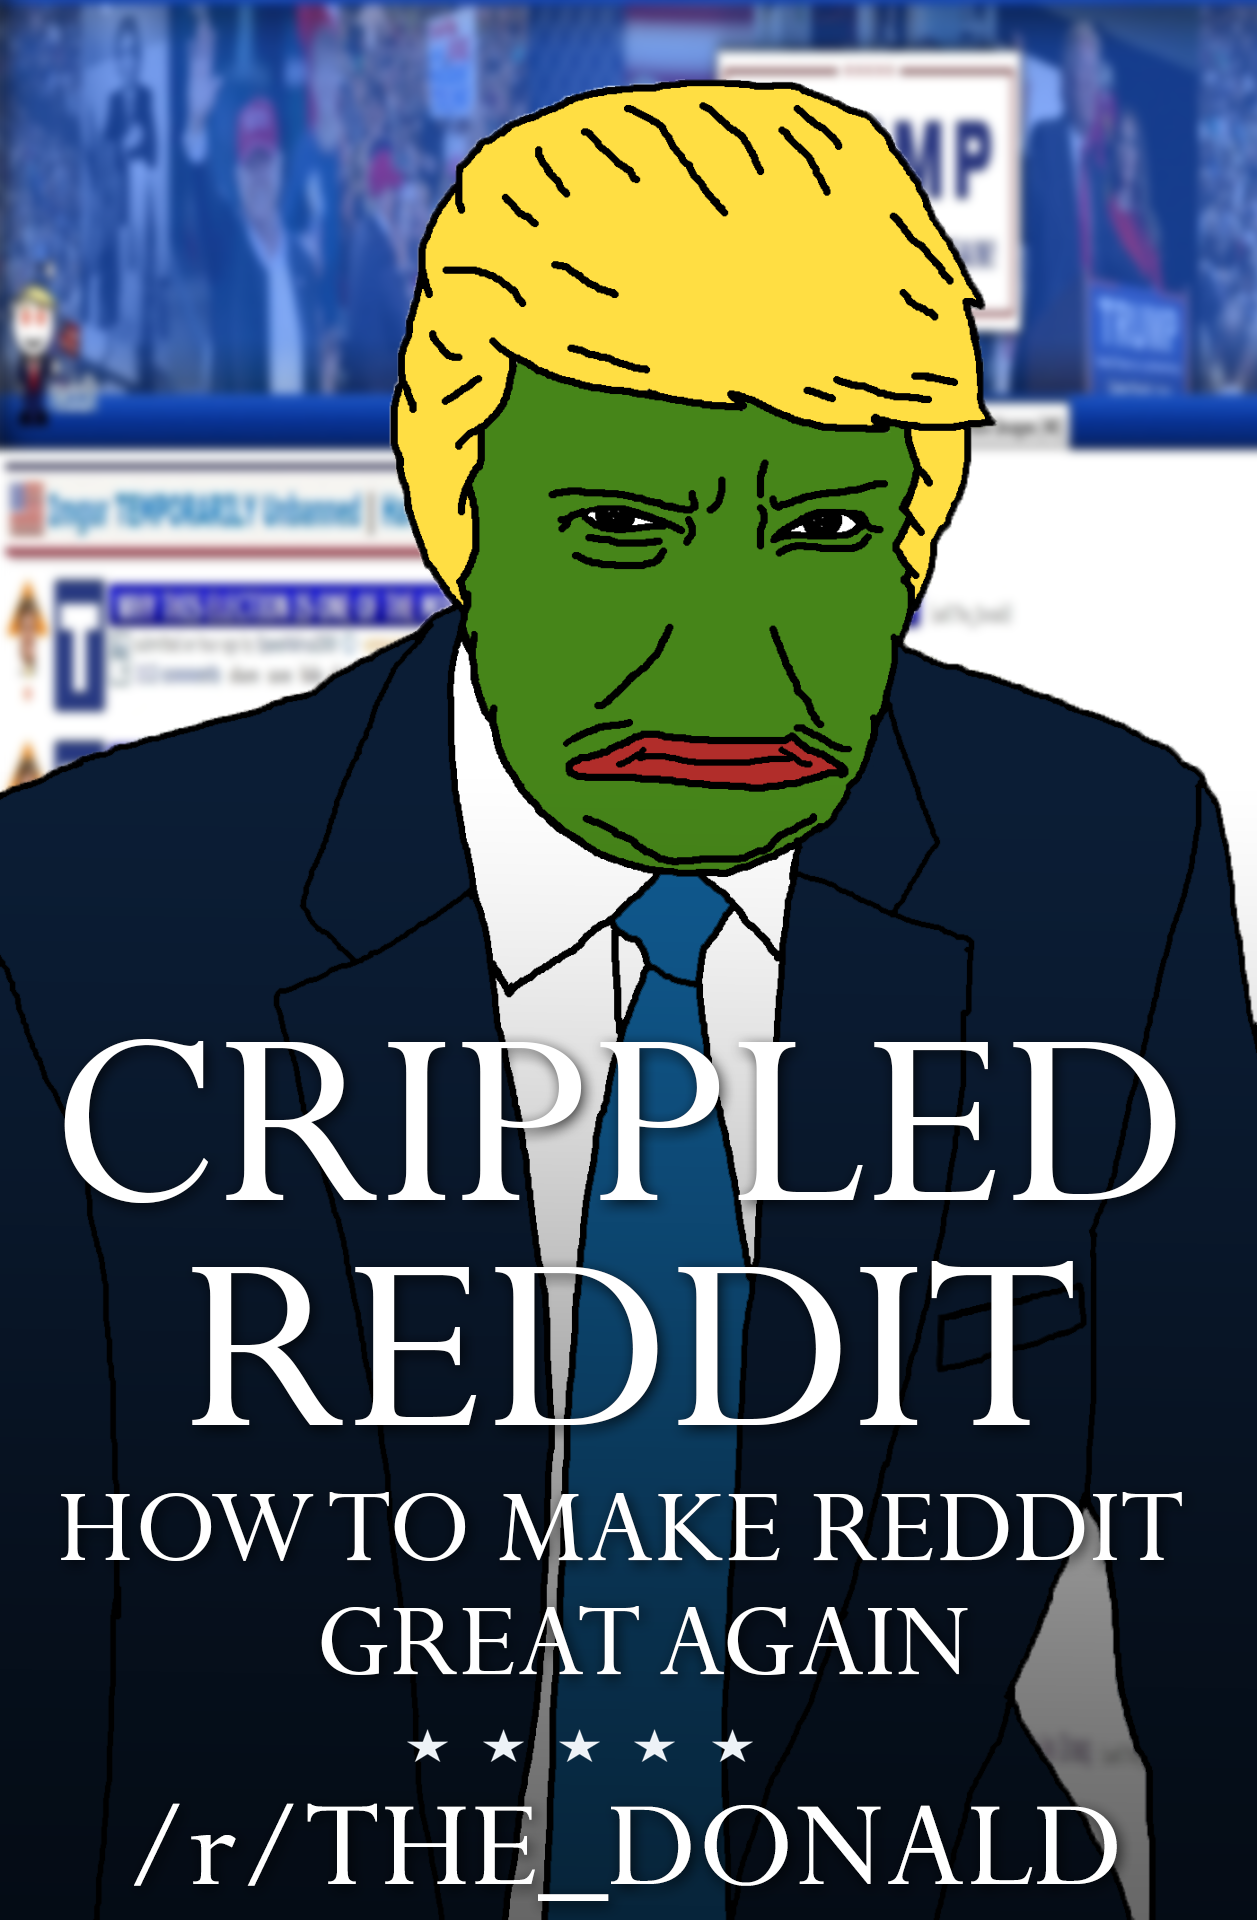 pepe trump.0 how a tiny image sharing website turned into trumplandia the verge